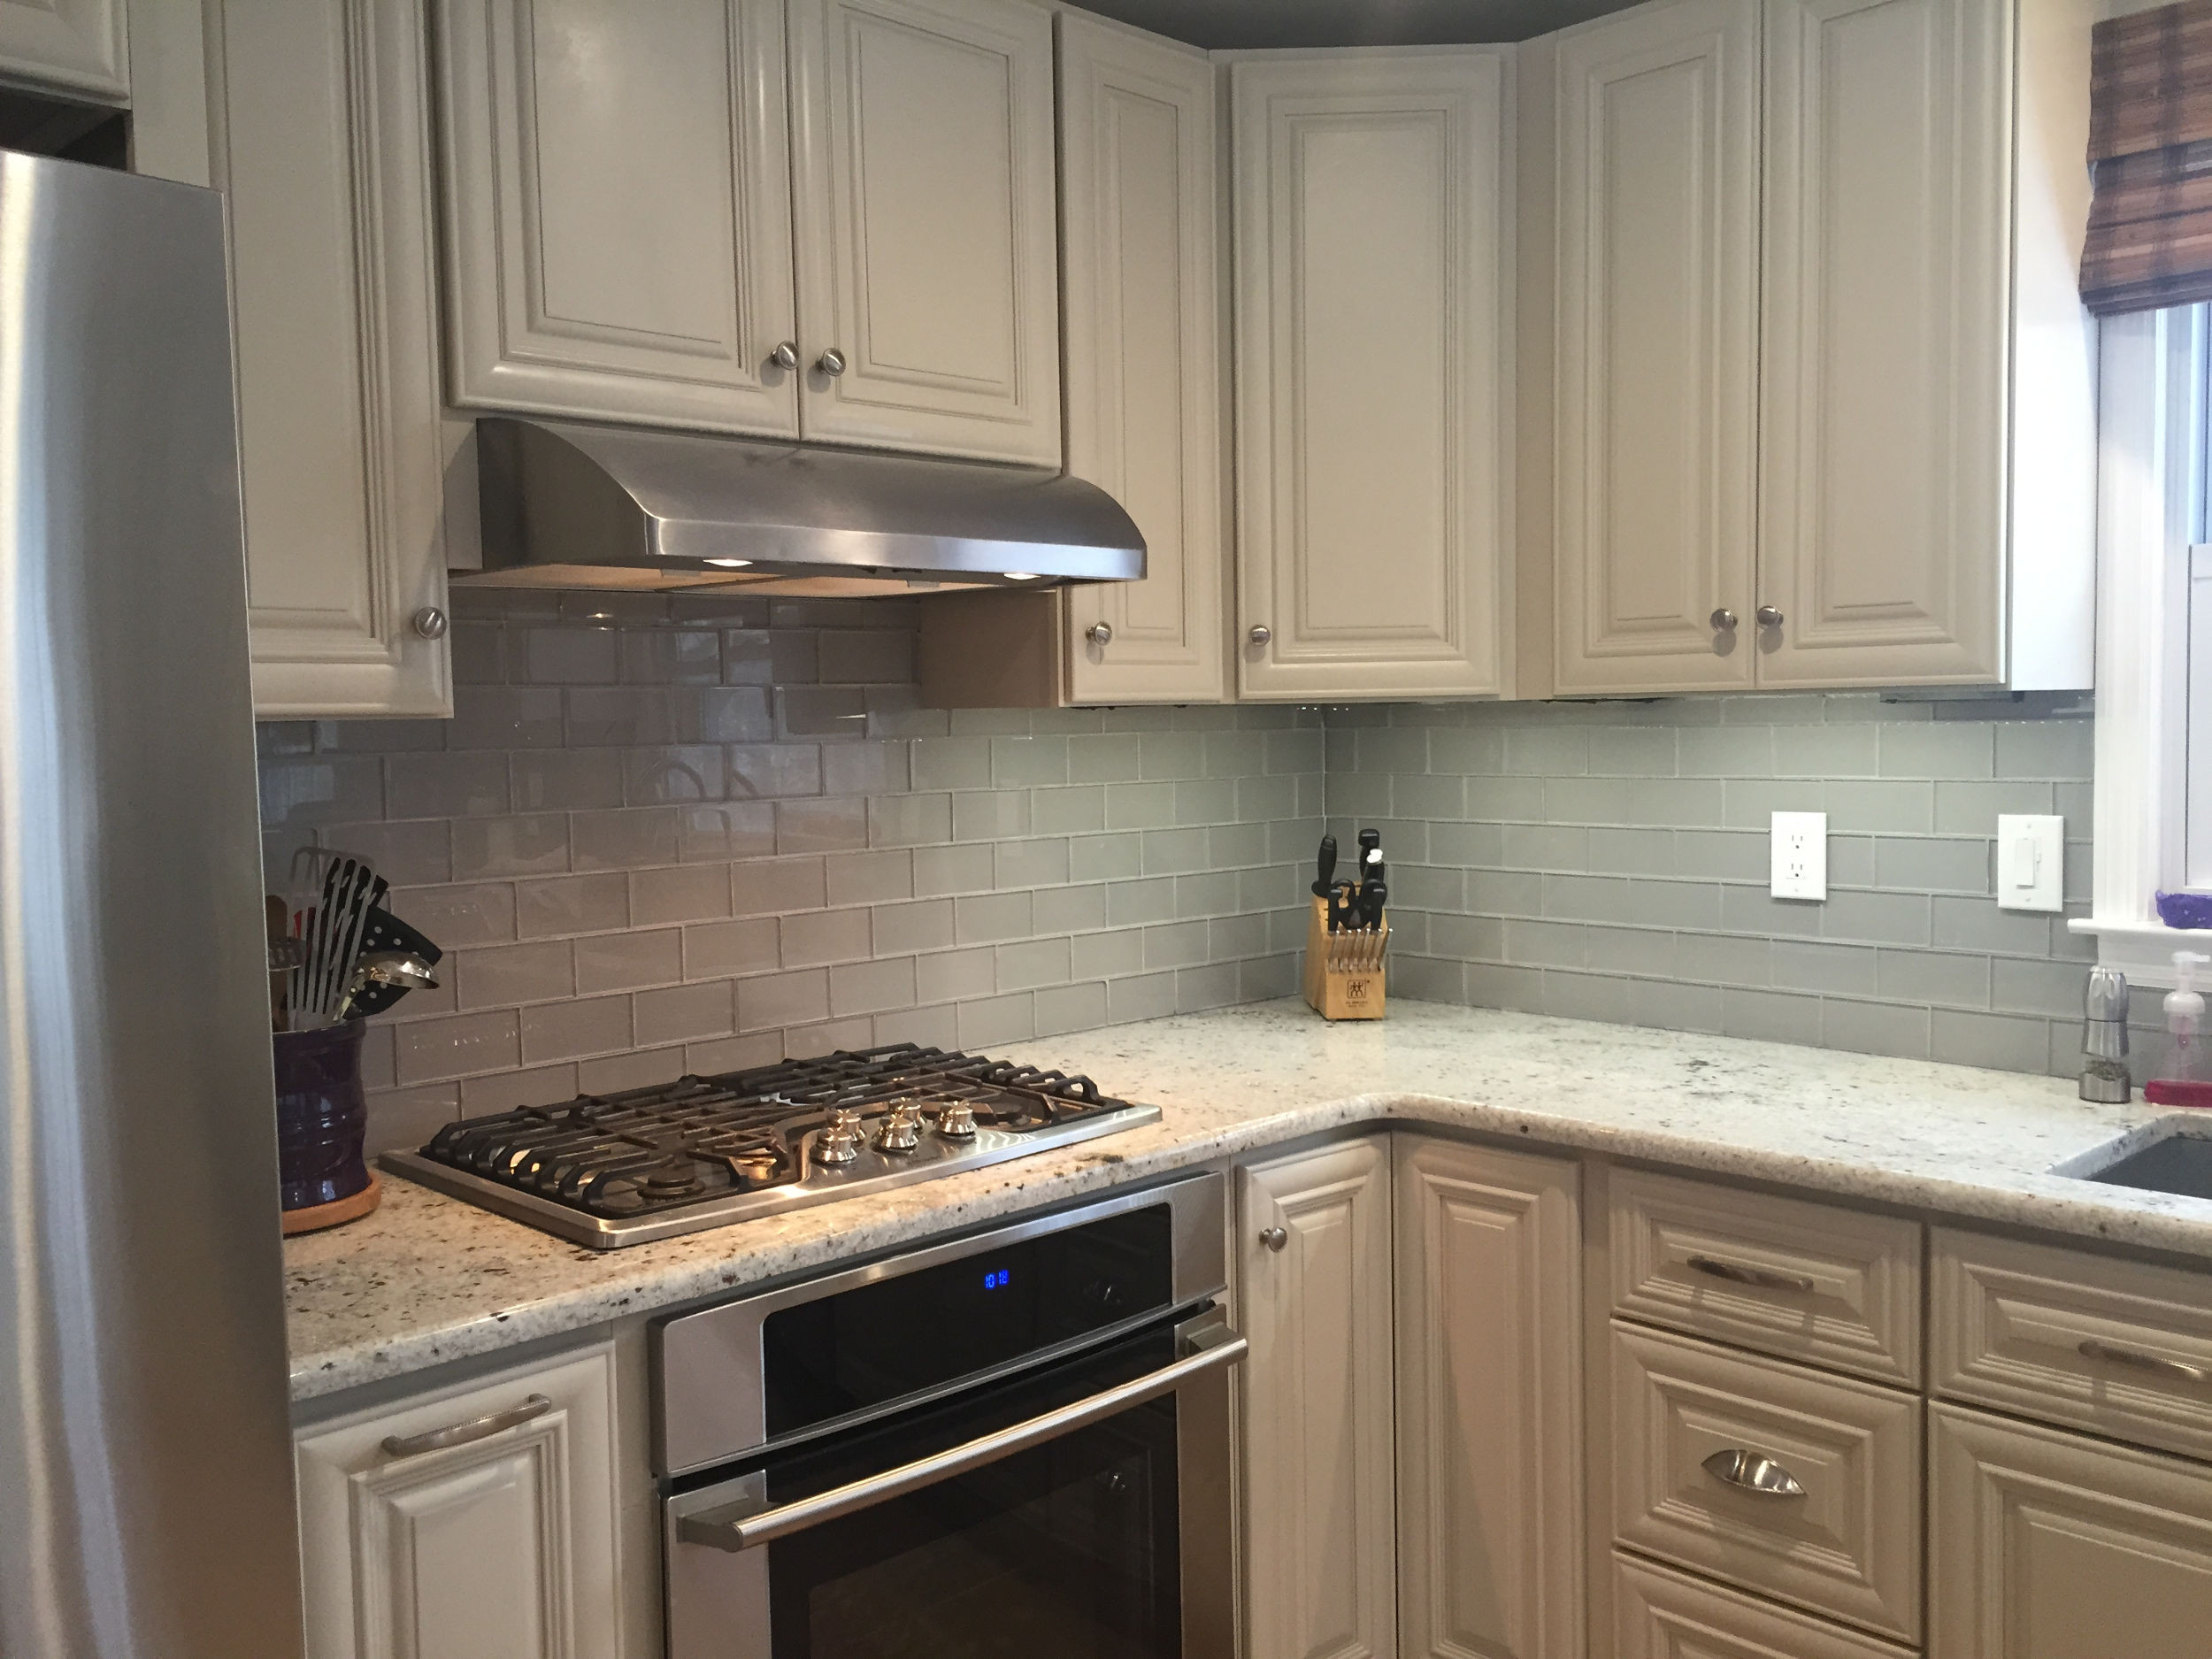 Tile Kitchen Backsplash  75 Kitchen Backsplash Ideas for 2019 Tile Glass Metal etc